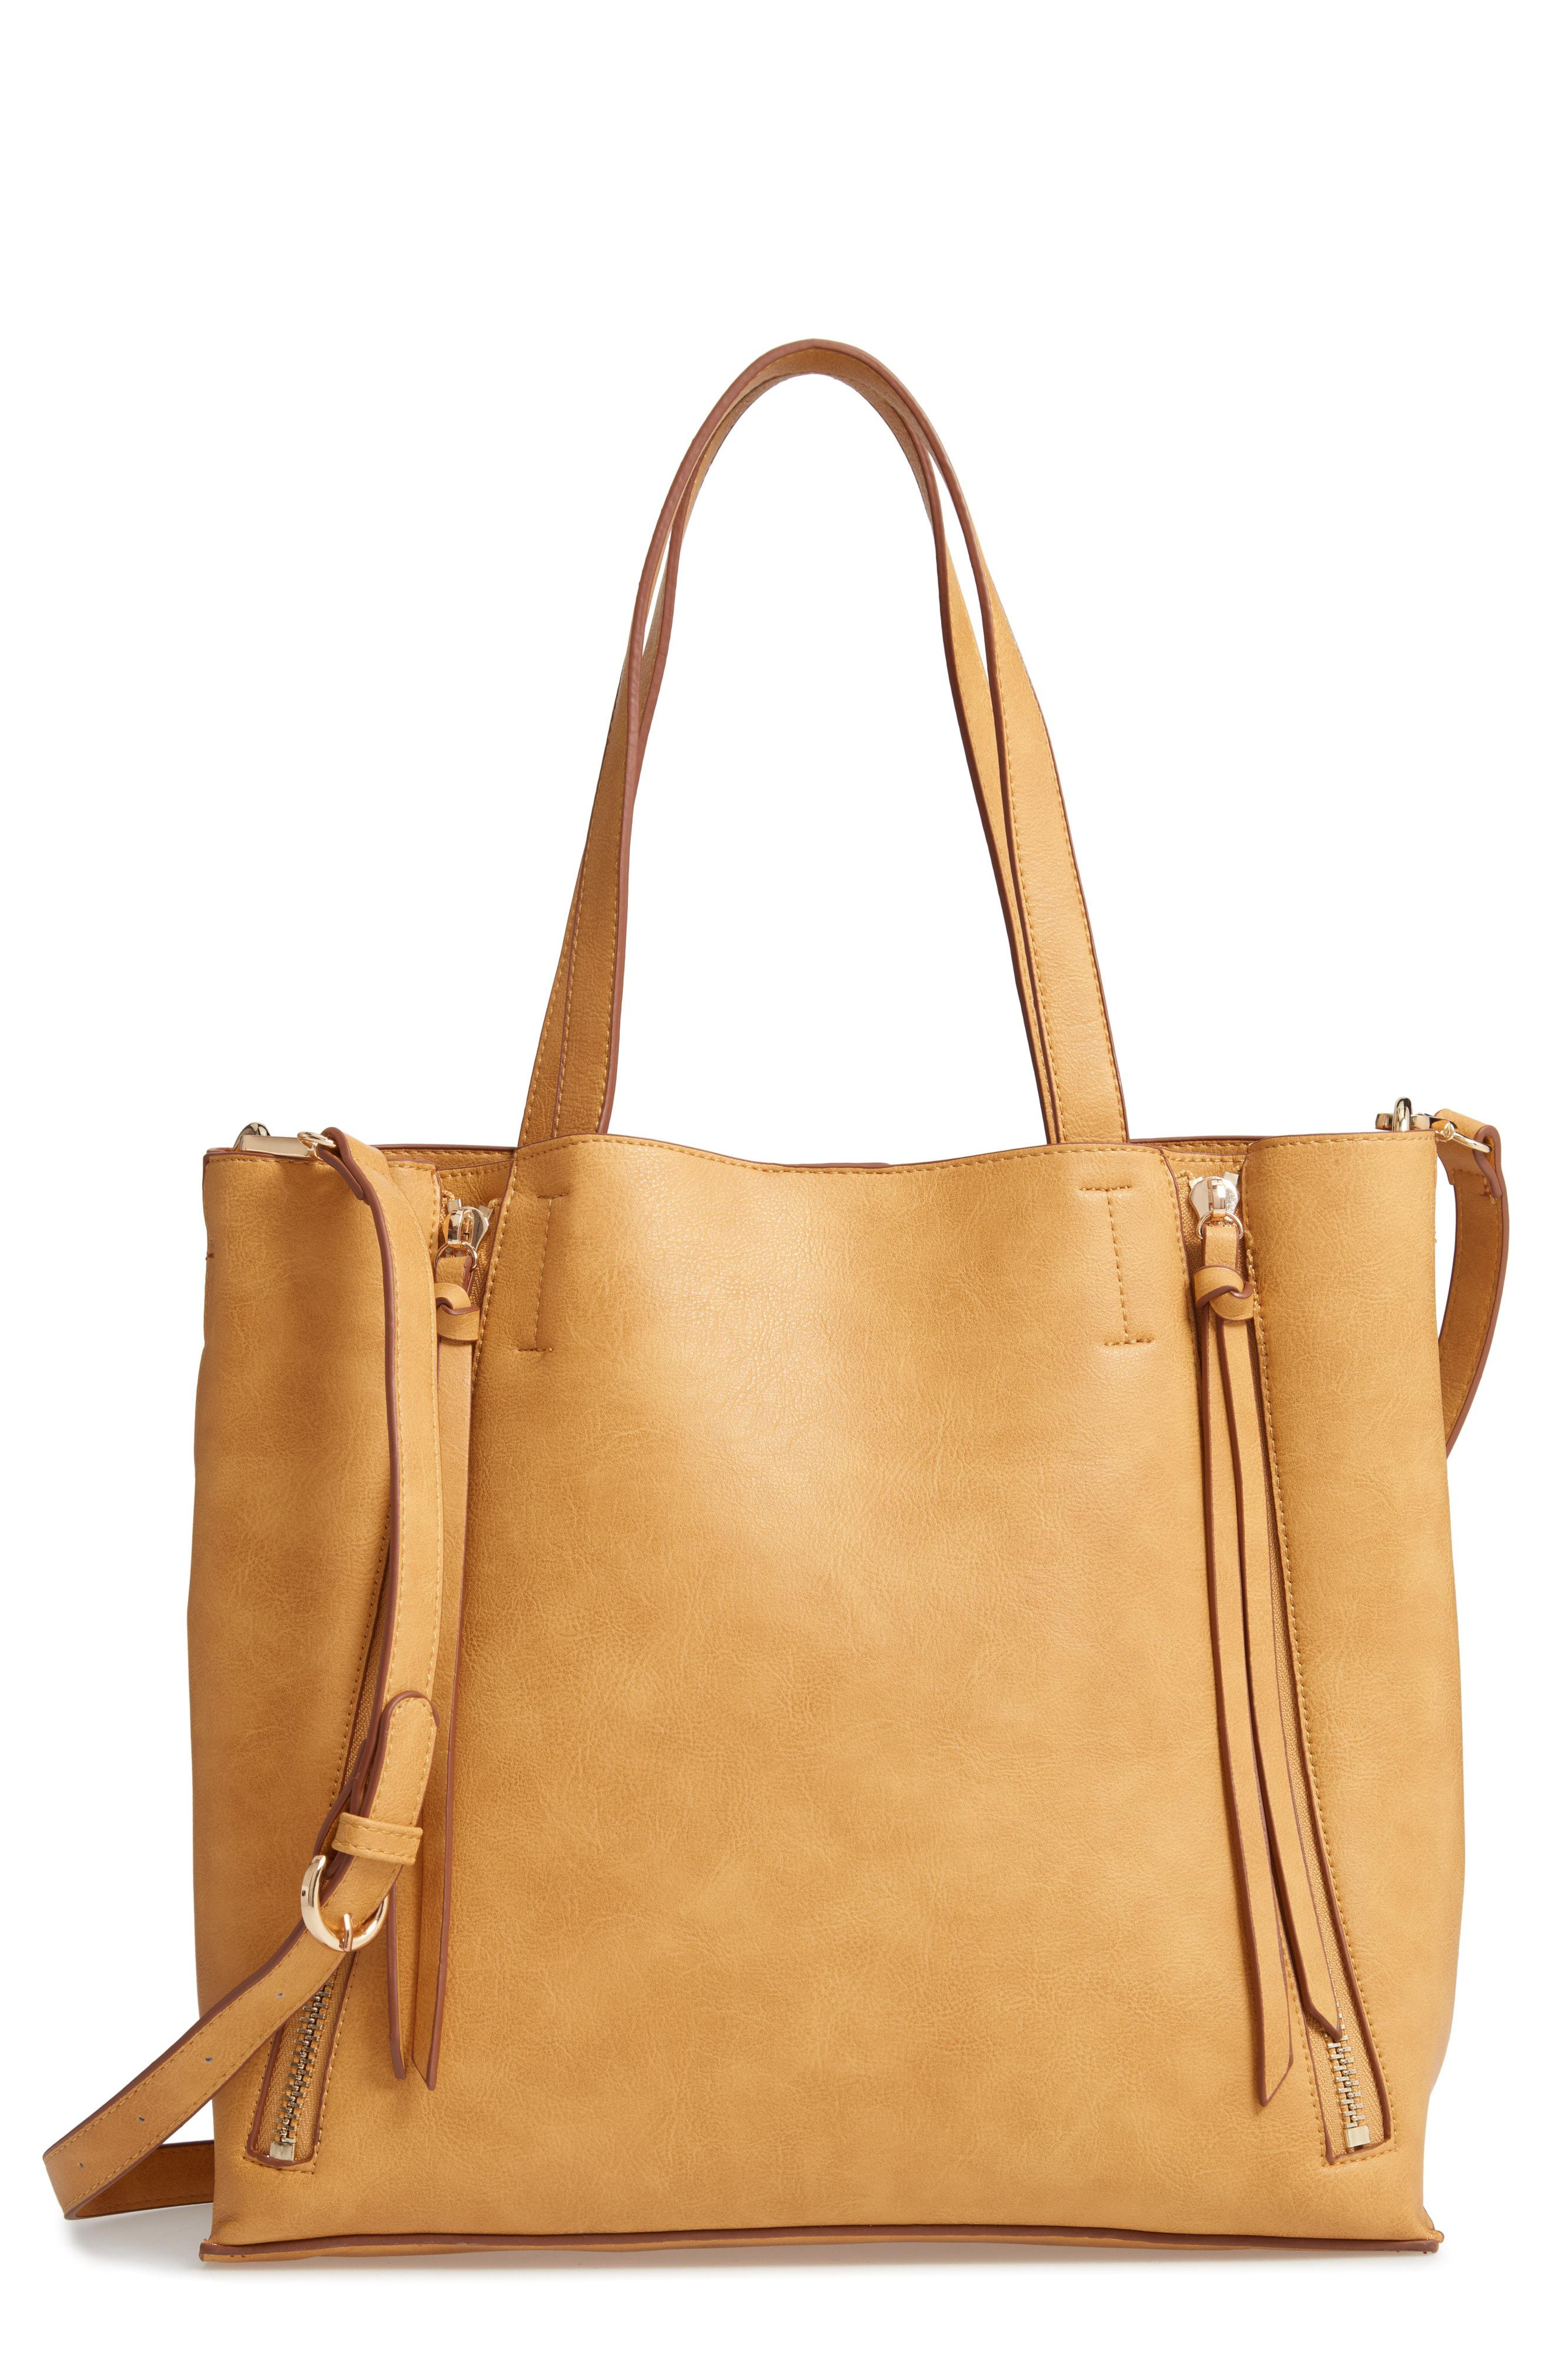 Lyst - Chelsea28 Leigh Convertible Zipper Faux Leather Tote in Brown 4fbc203e29